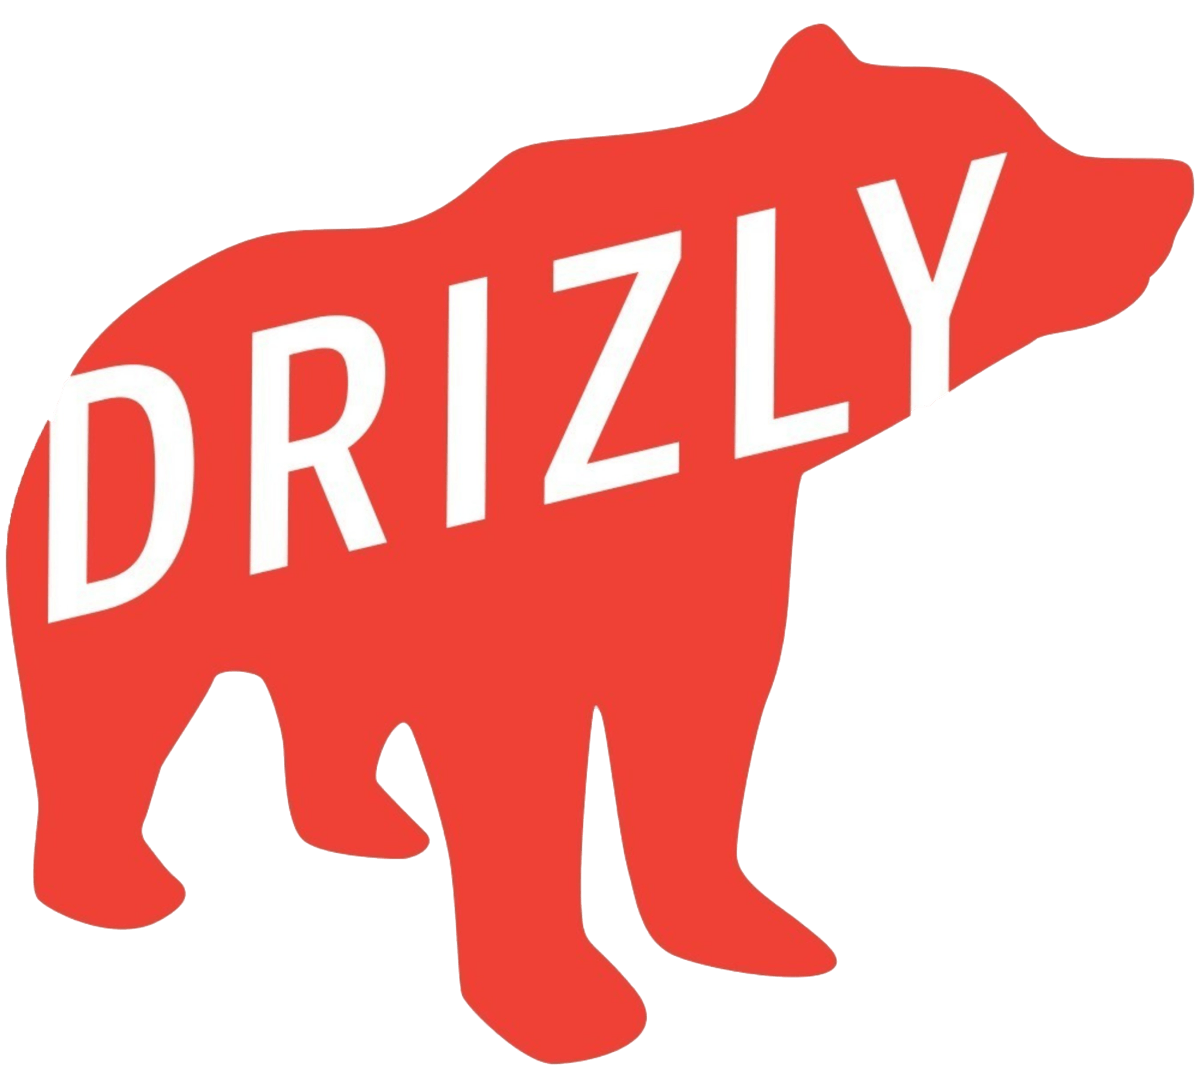 Place an order through Drizly